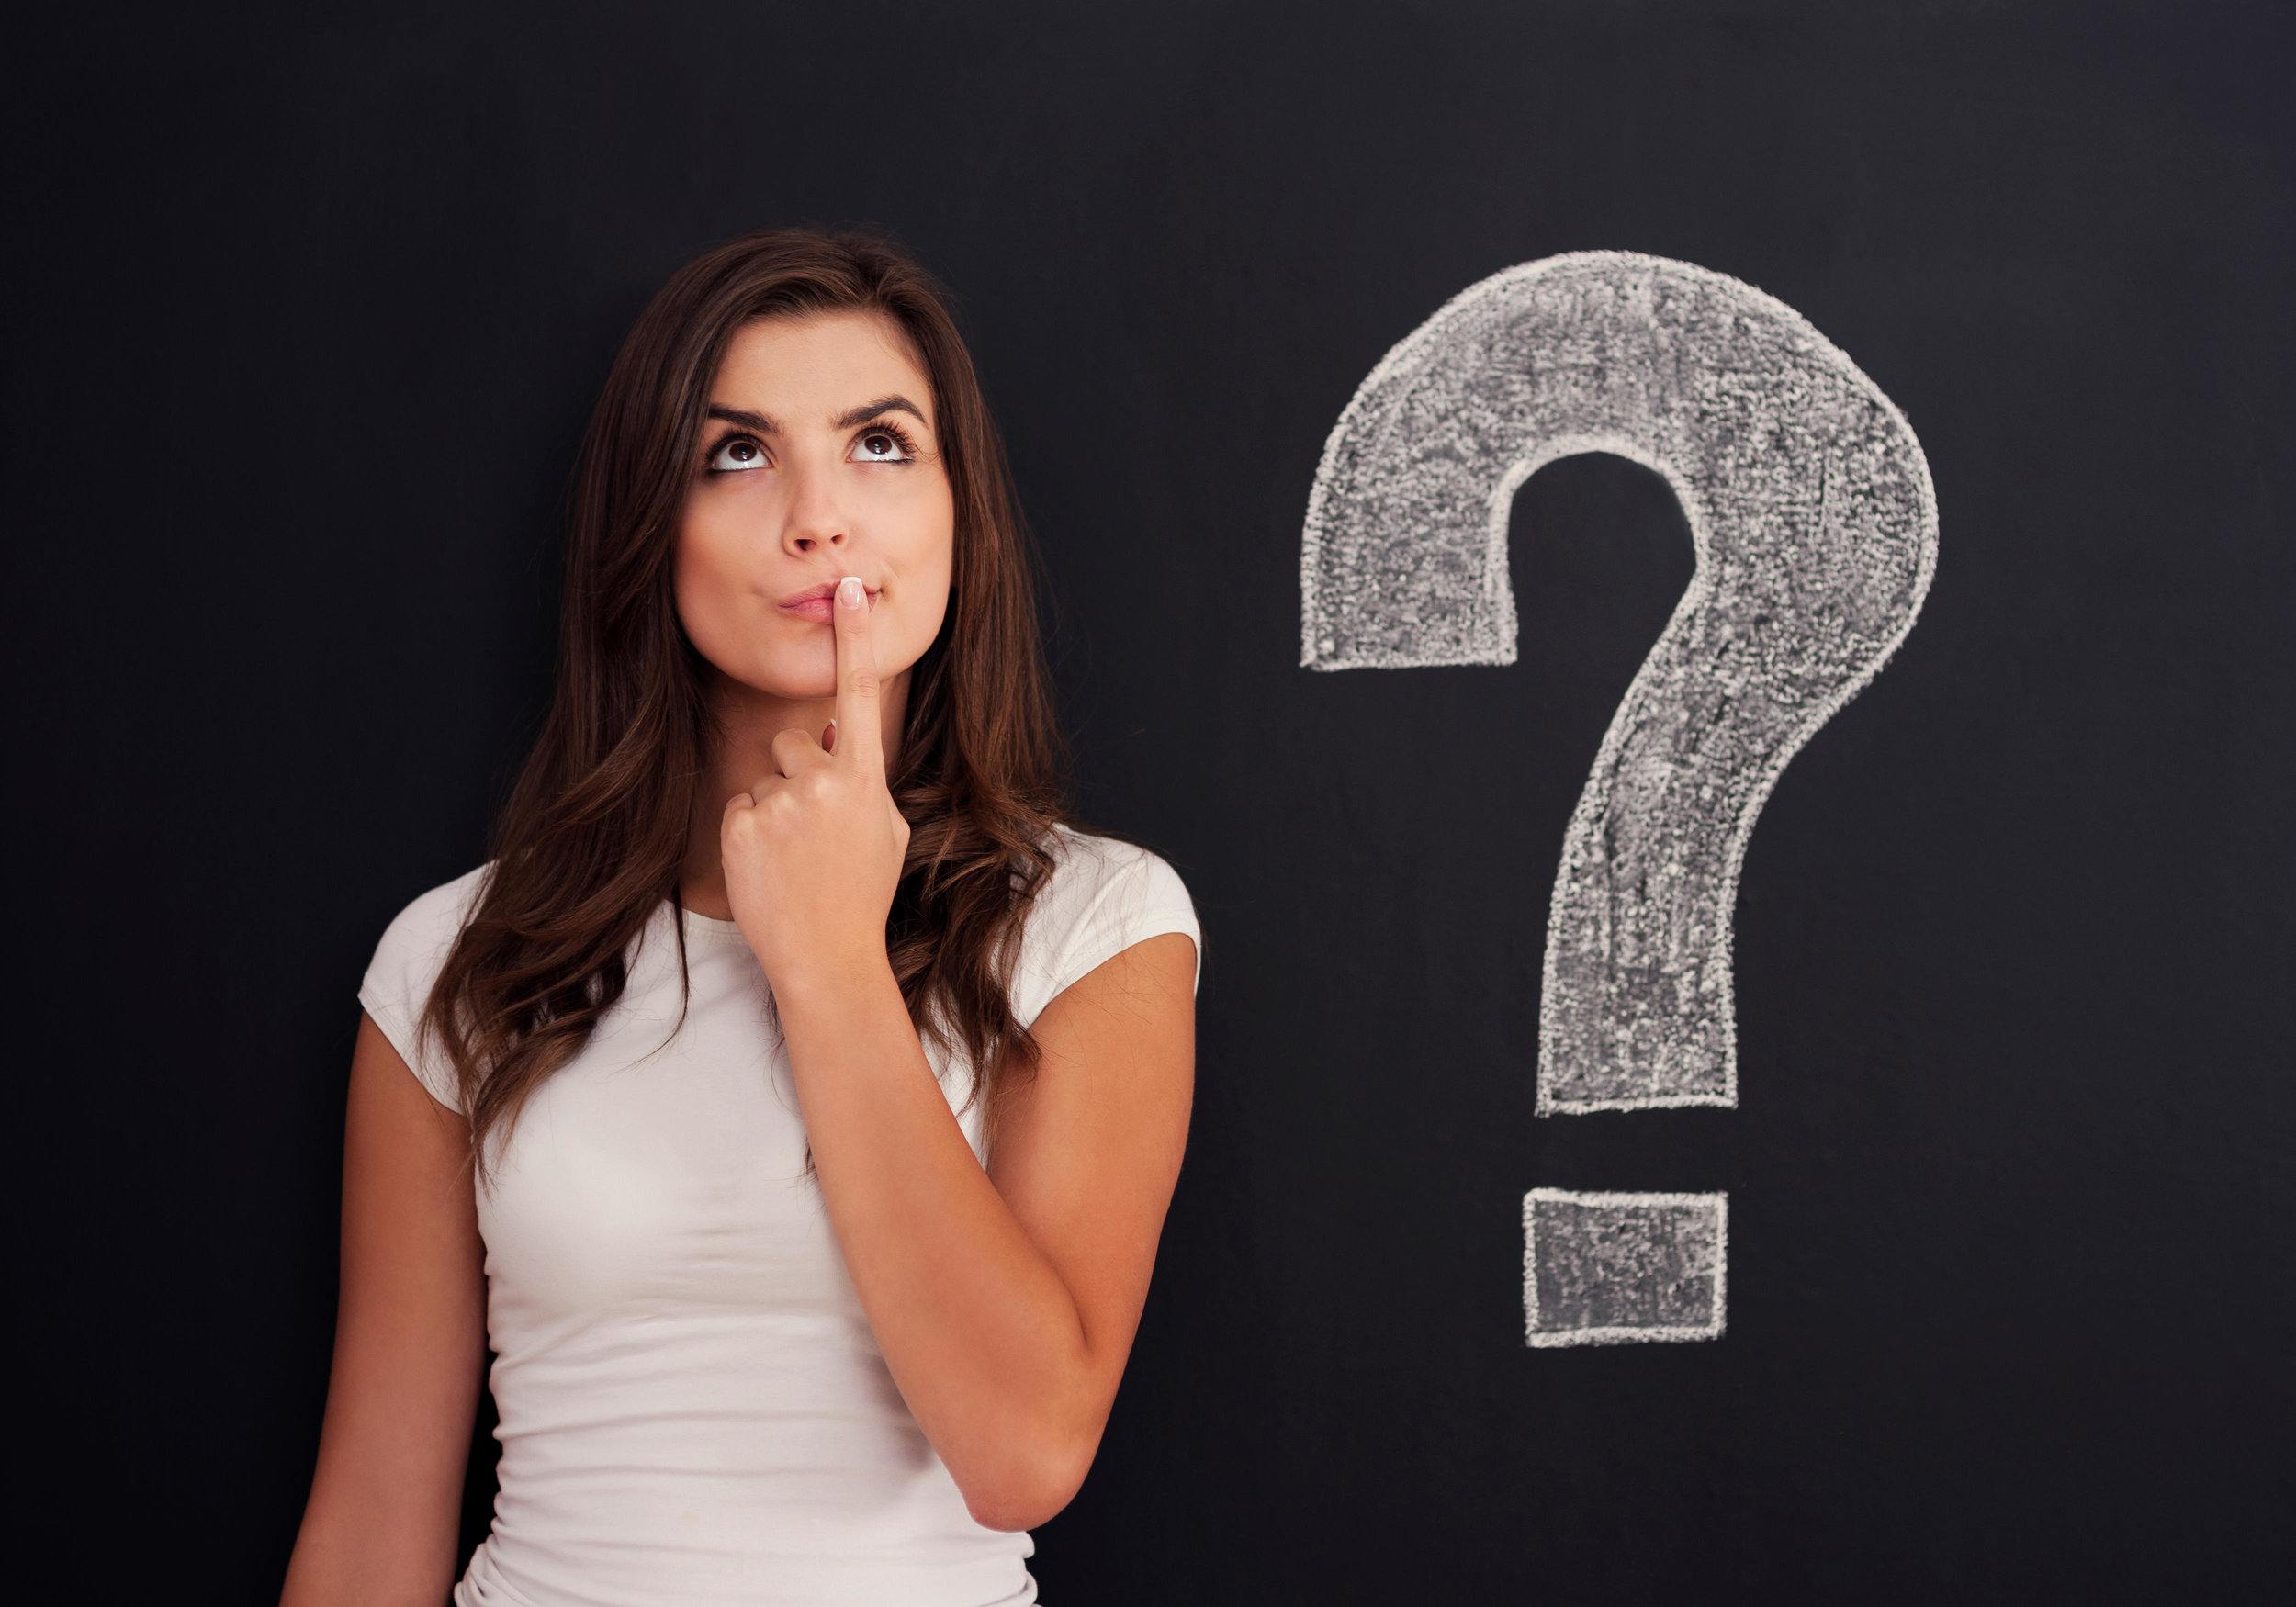 Want to start investing into an Isa? These are the three questions you need to ask